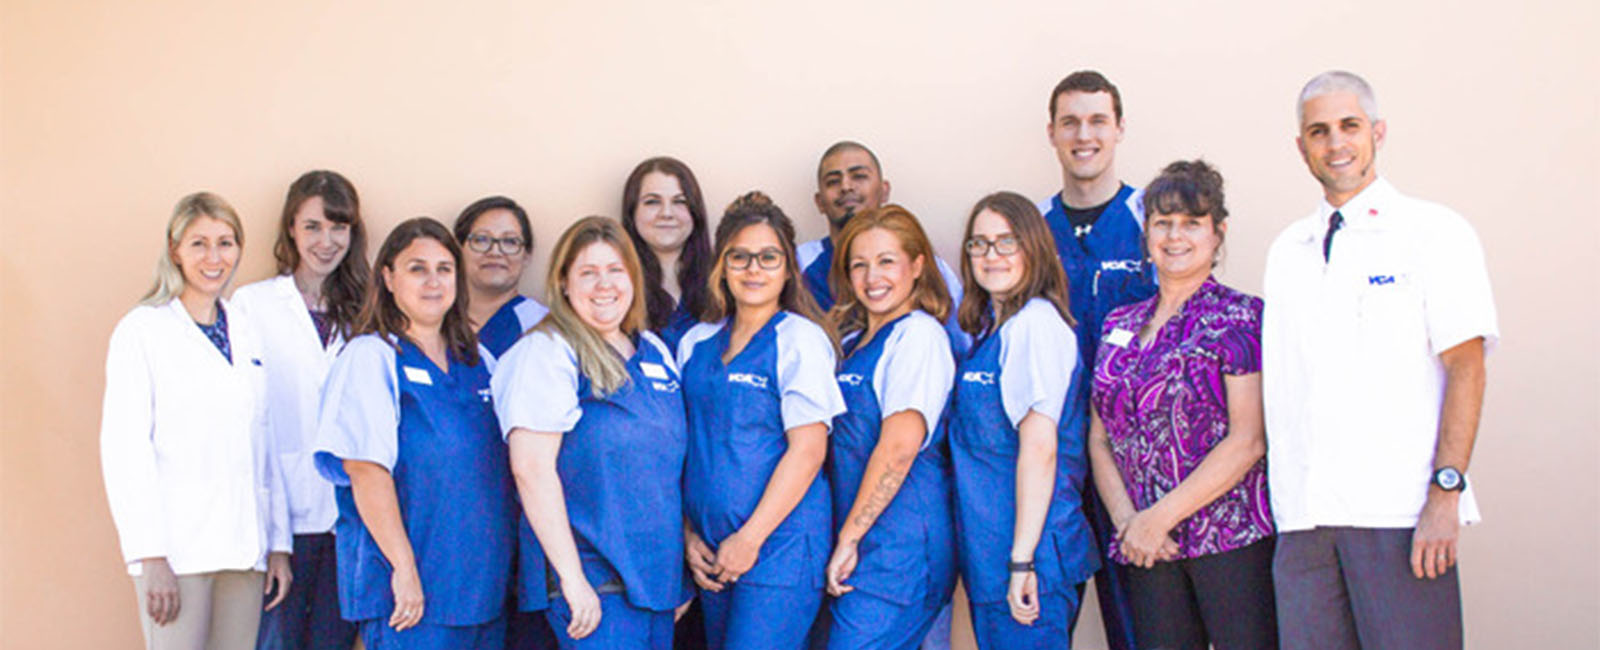 Homepage Team Picture of VCA El Mirage Animal Hospital